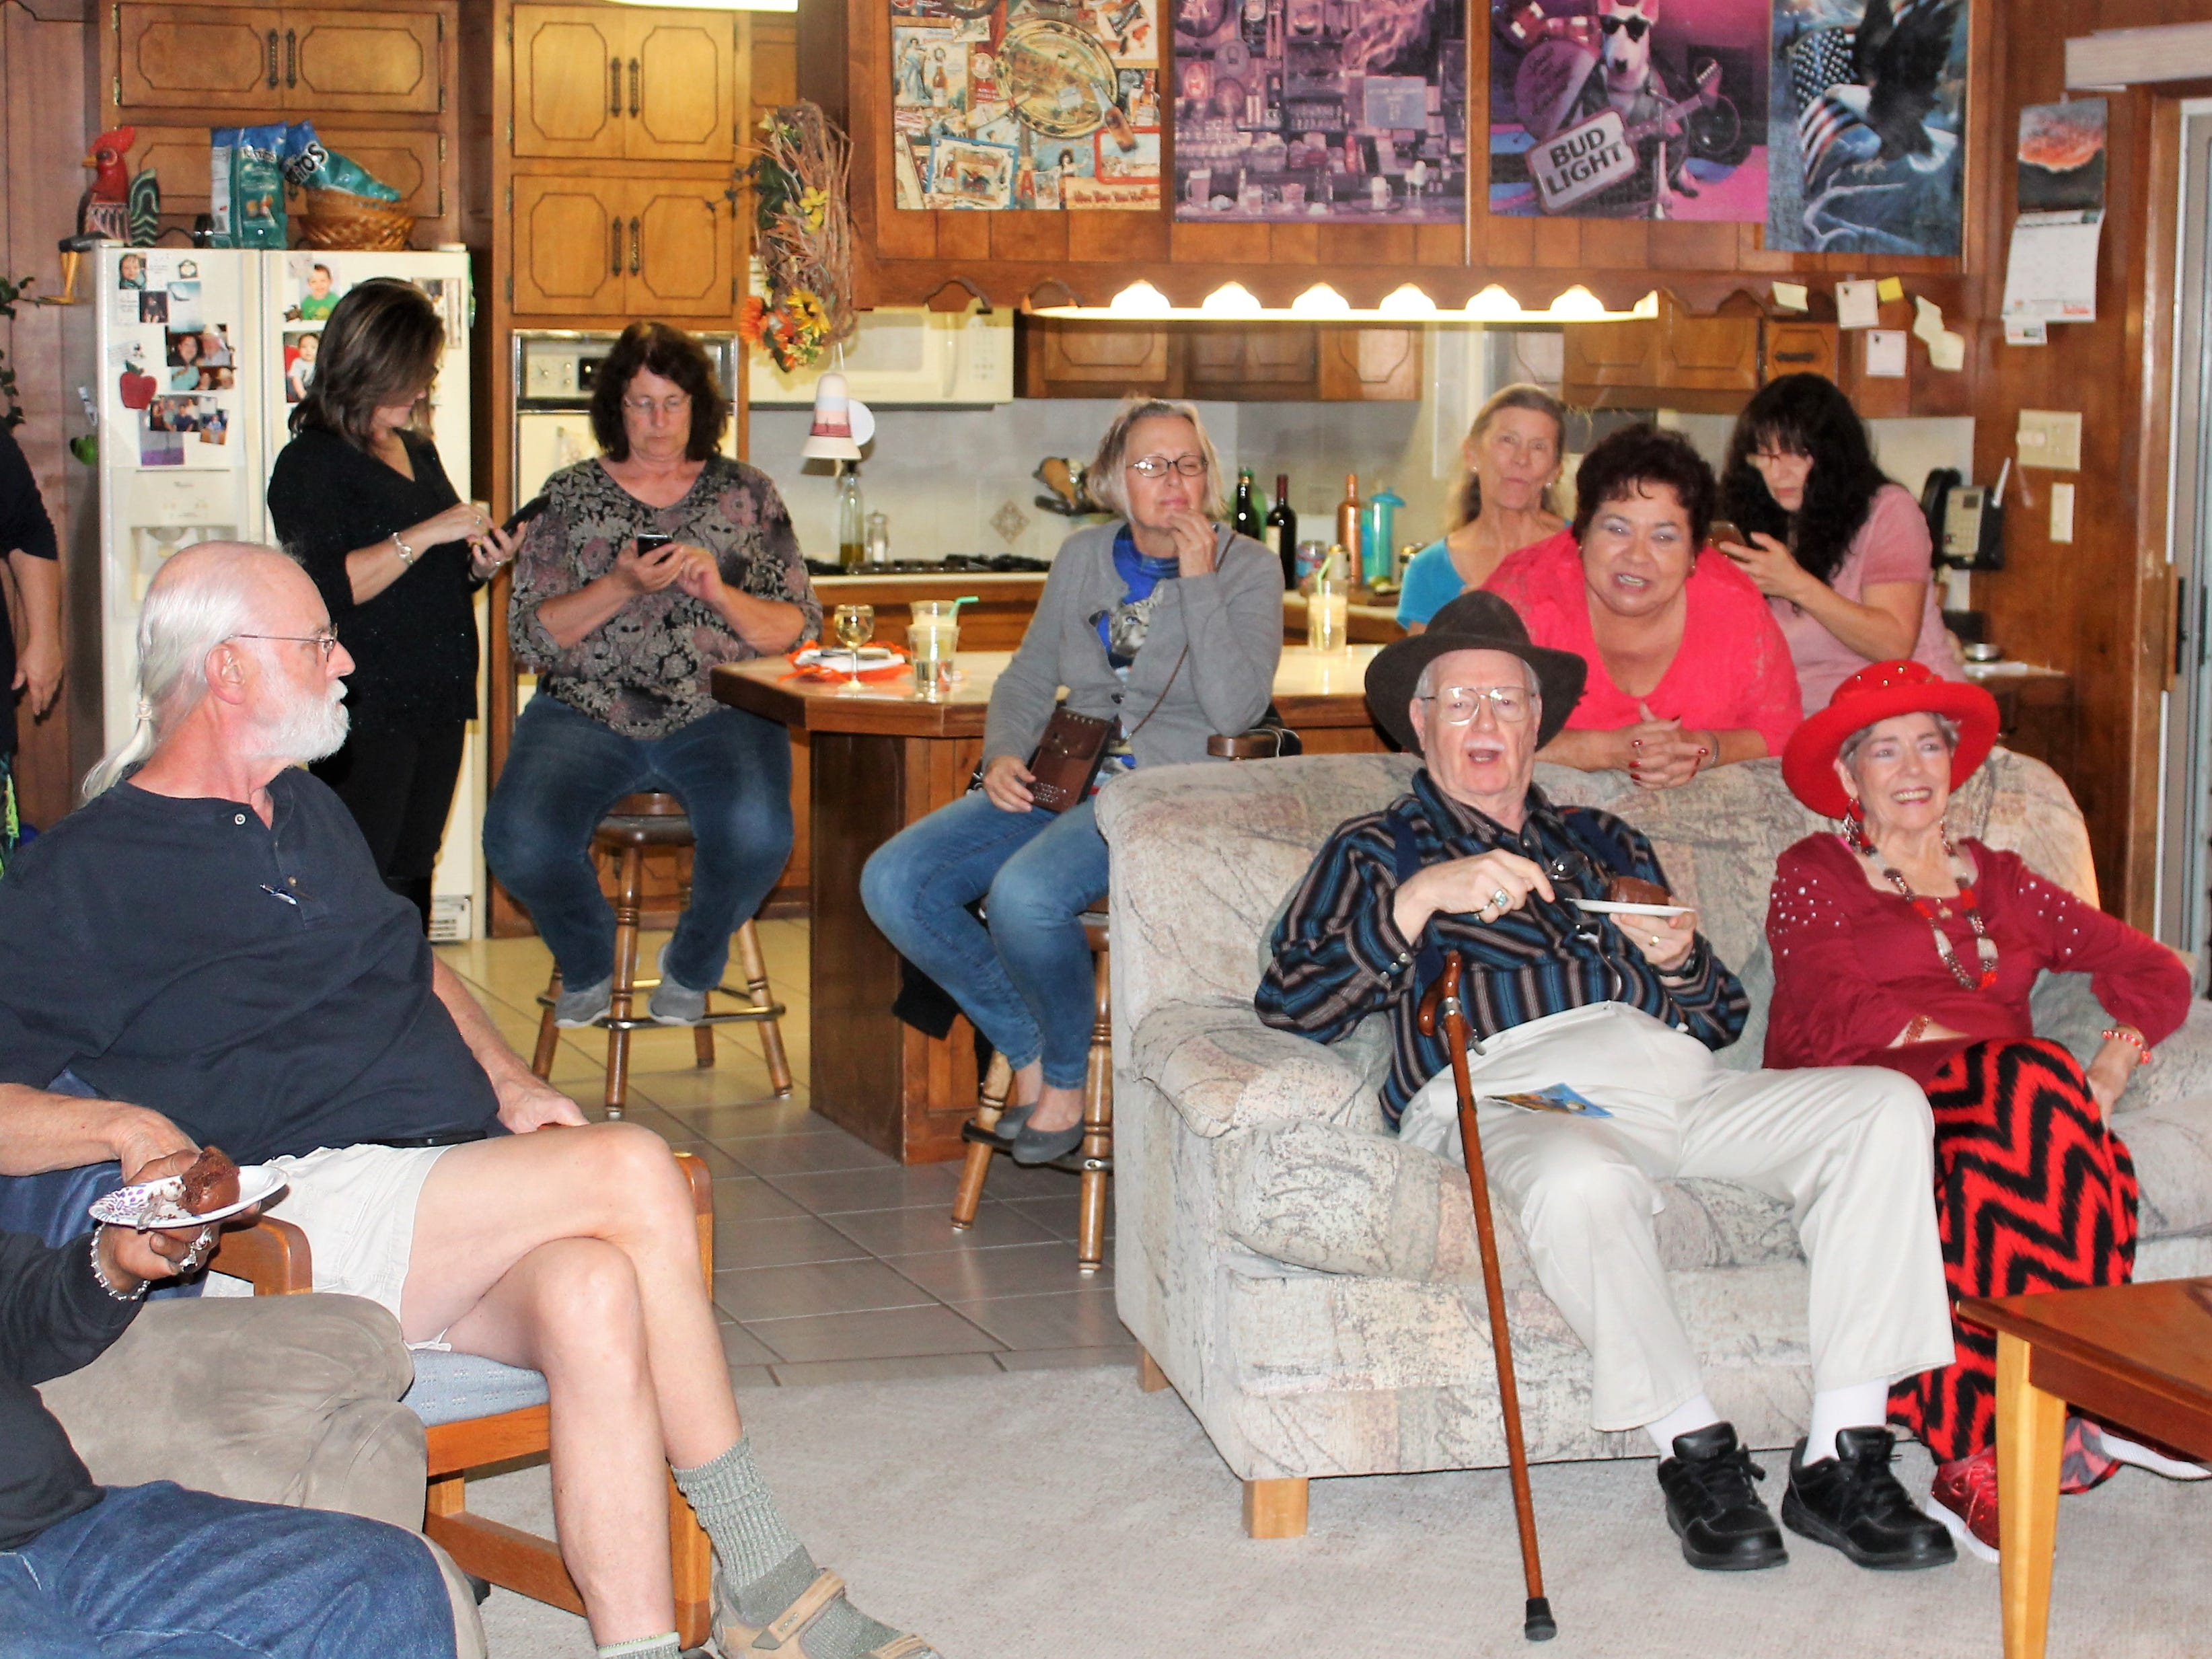 Members of the Democratic Party of Otero County enjoy snacks, beverages and conversation at the Pingal home in Alamogordo Tuesday night.